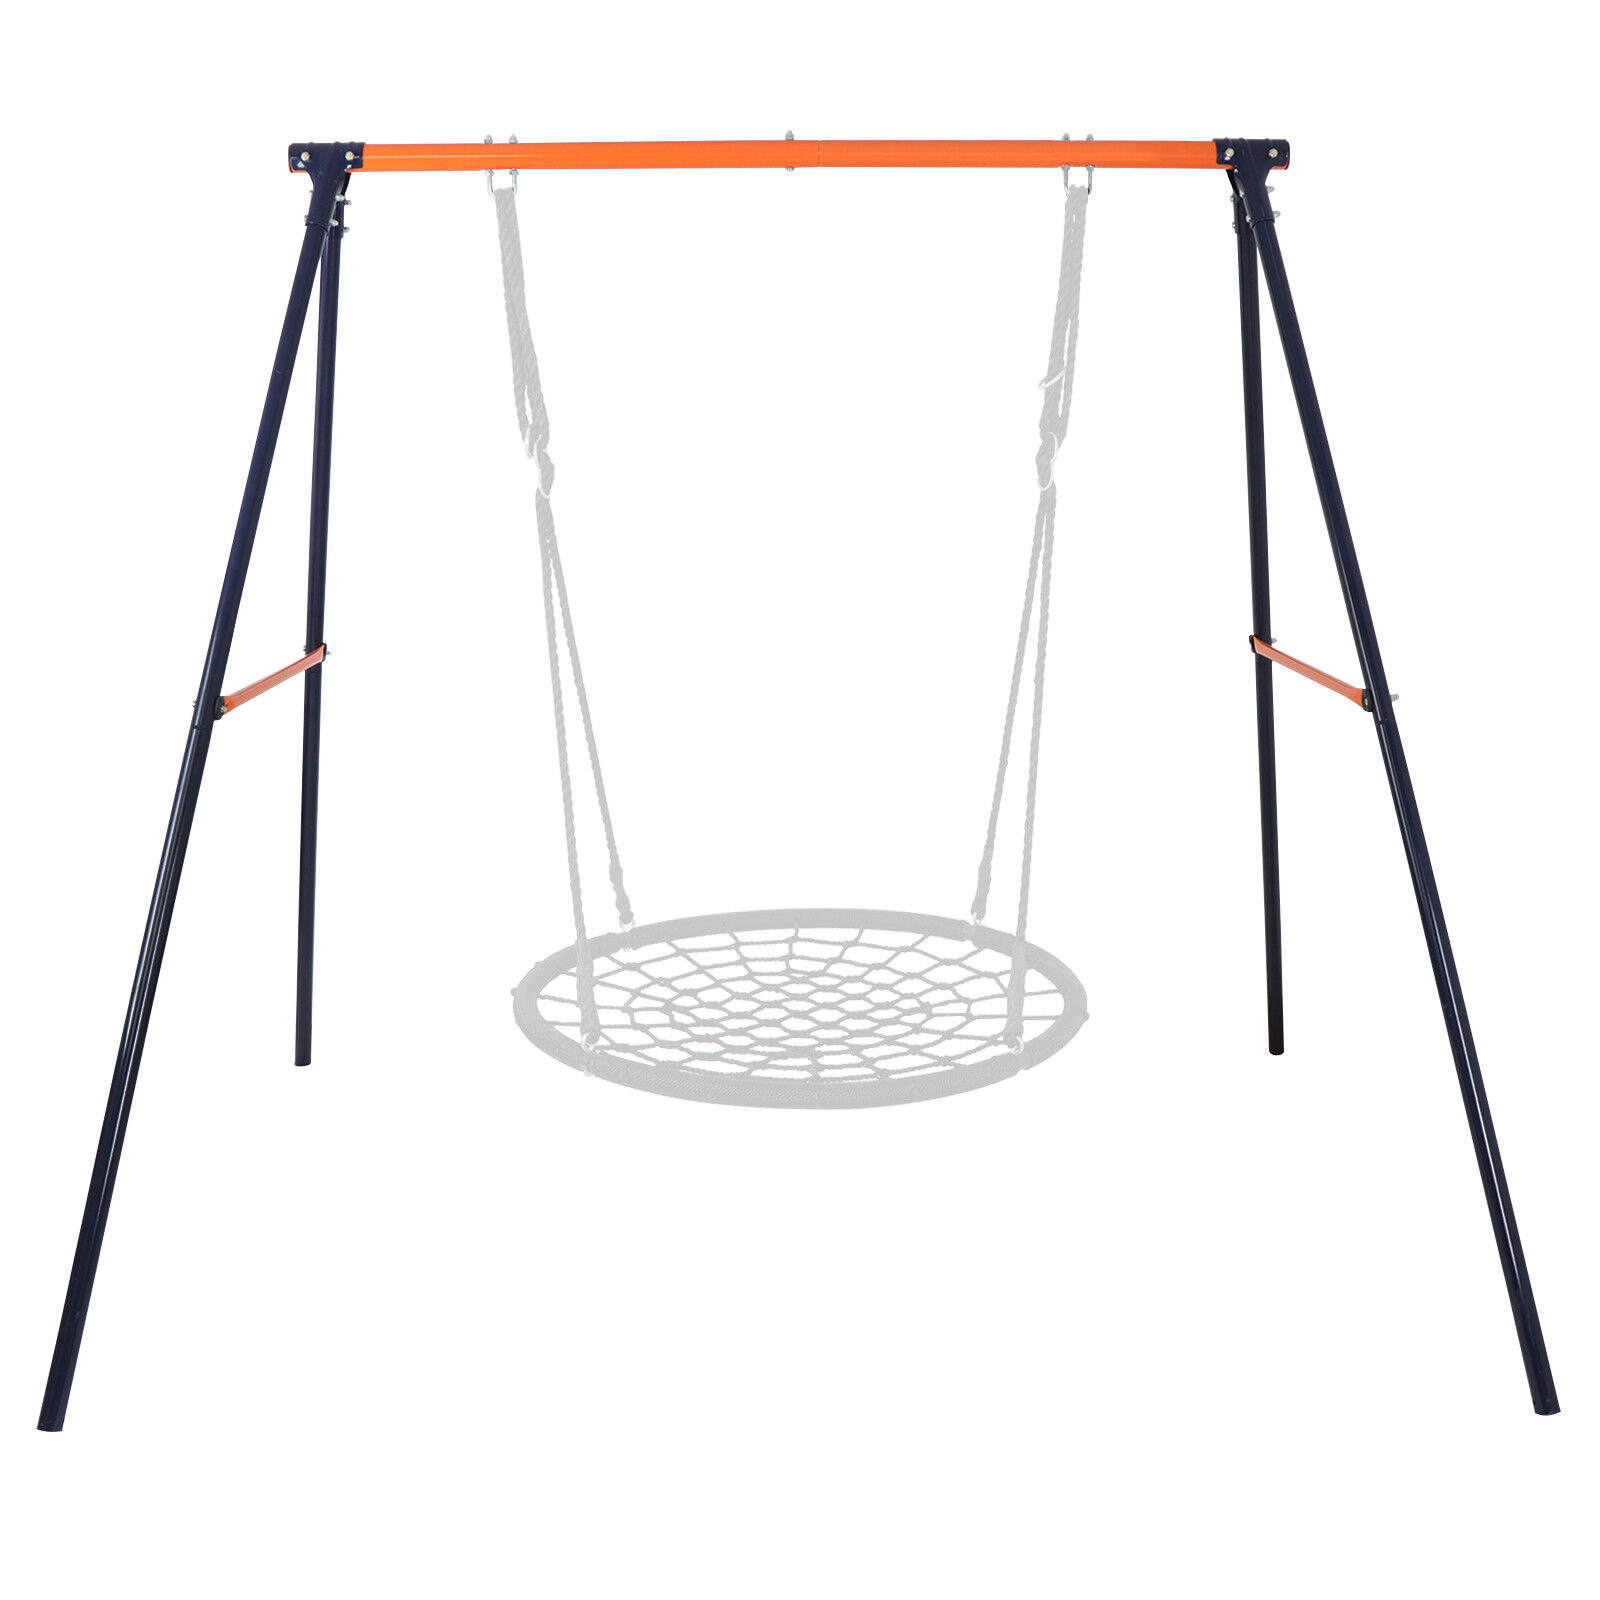 """A-Frame Swing Stand Yard Lawn Playground + 48"""" Spider Web Tree Swing Net Outdoor Toys & Structures"""